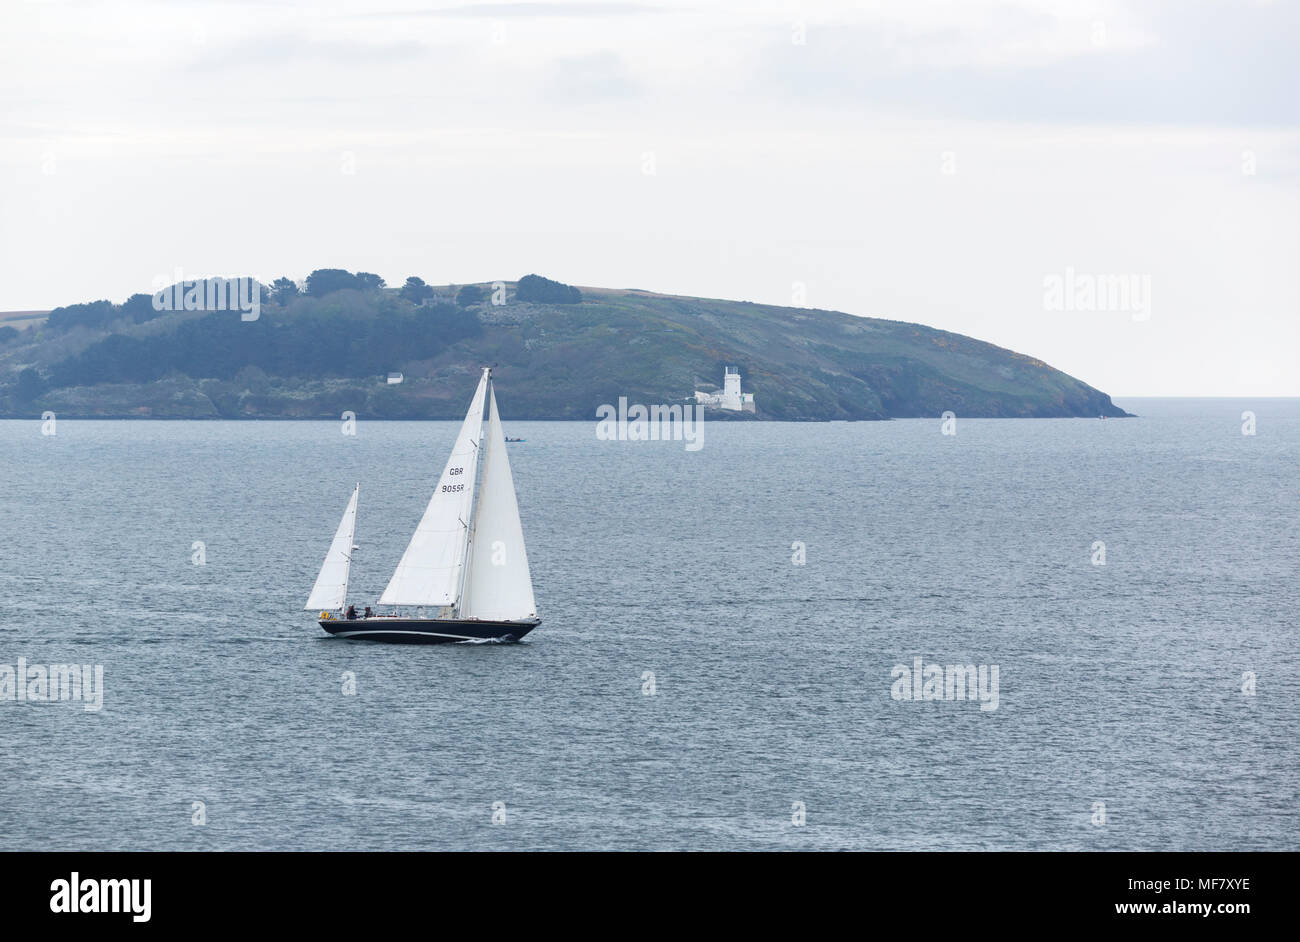 Yatch in the bay at Swanpool near Falmouth Cornwall - Stock Image